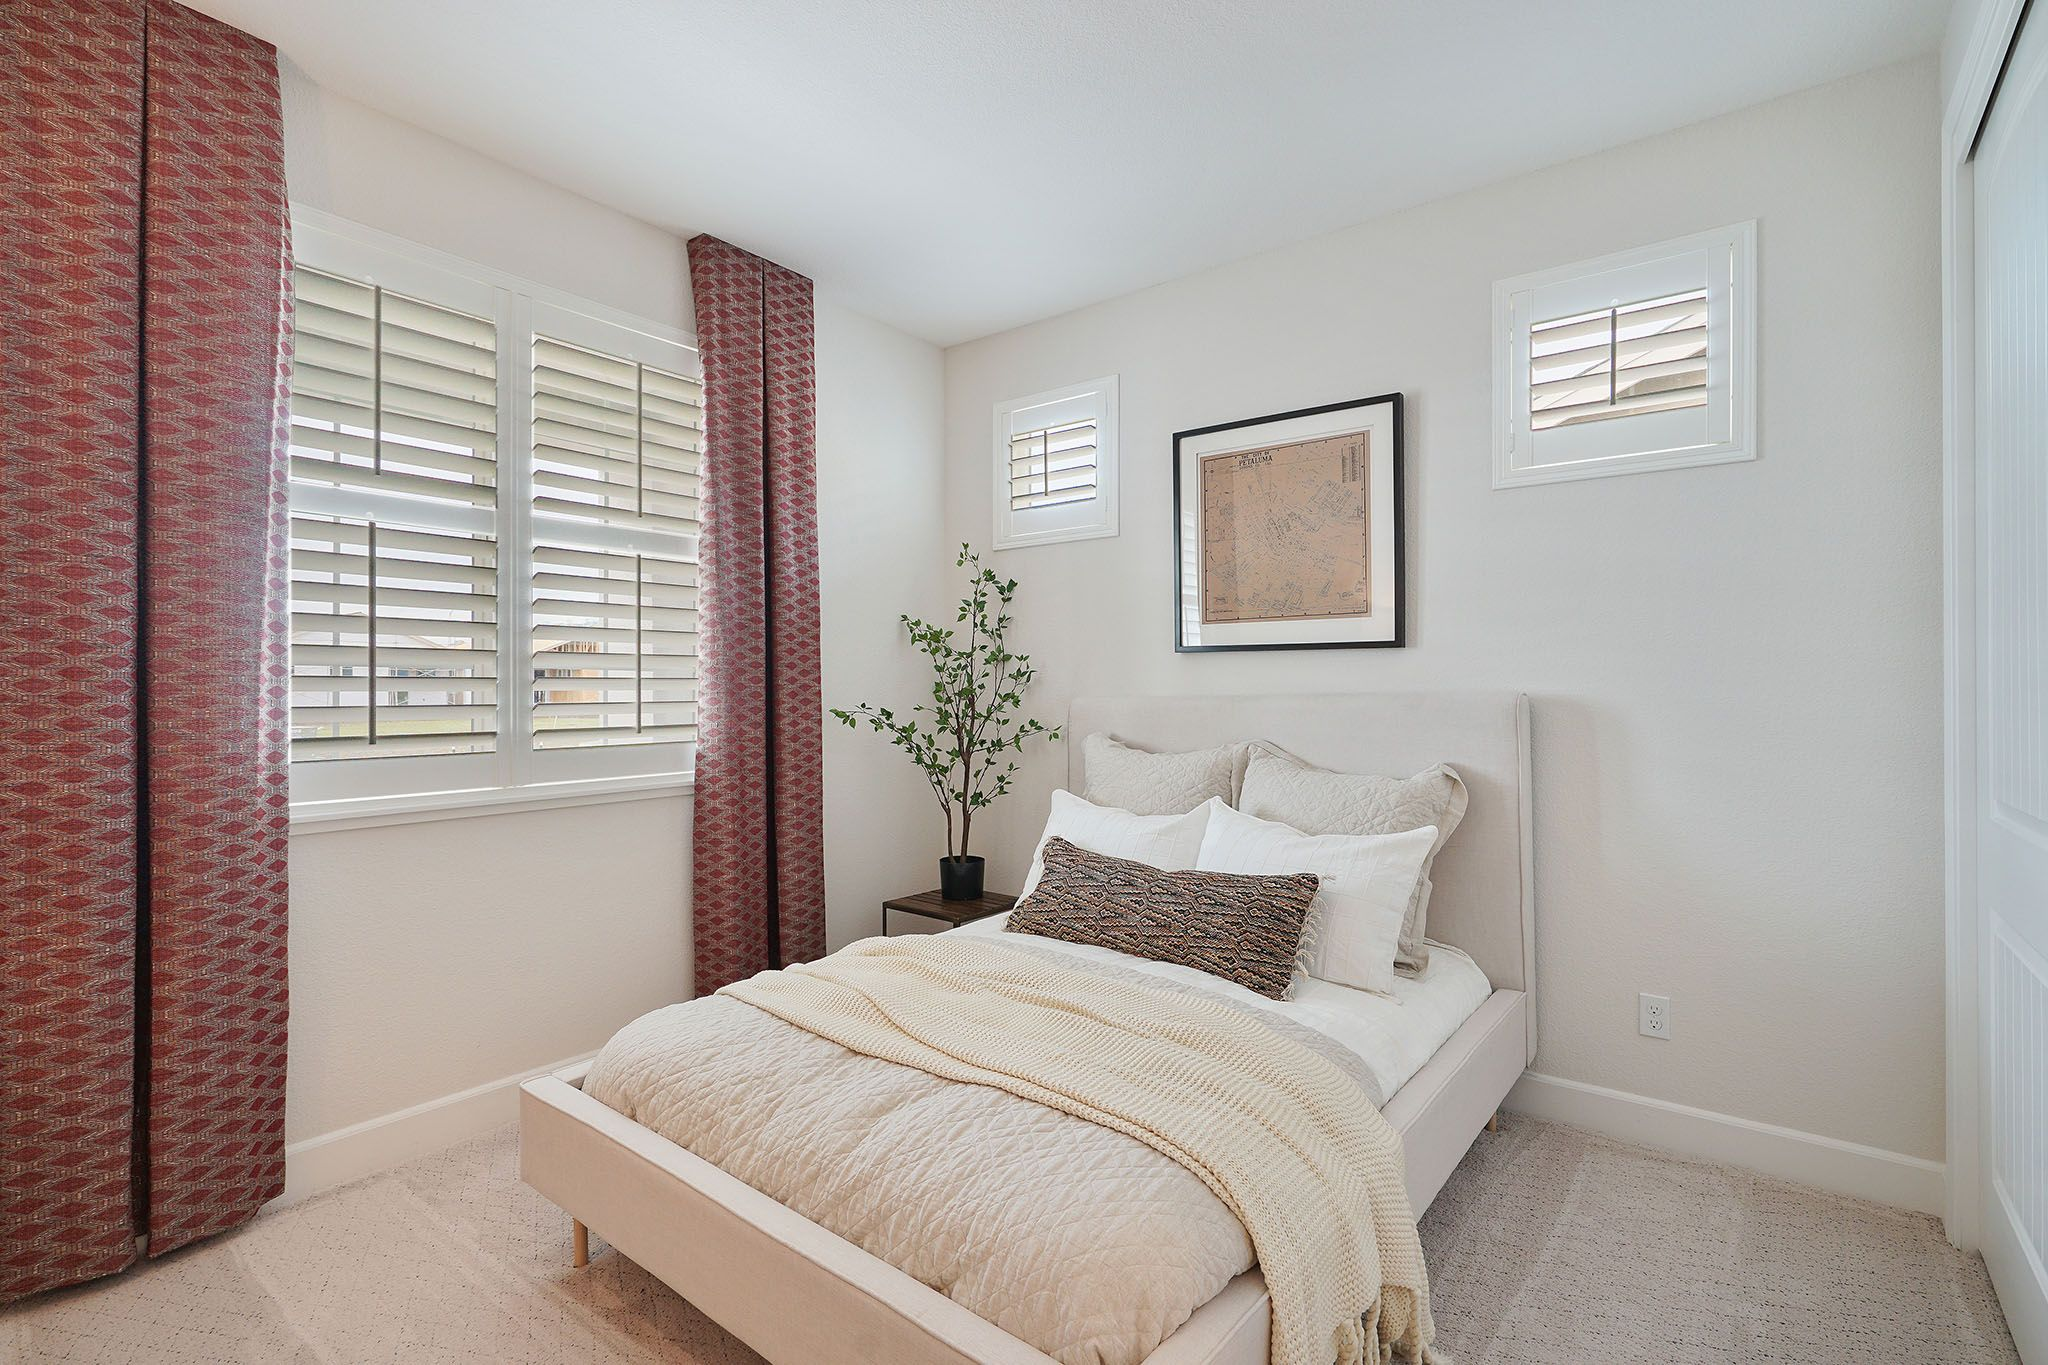 Bedroom featured in the Whitney By Discovery Homes in Chico, CA